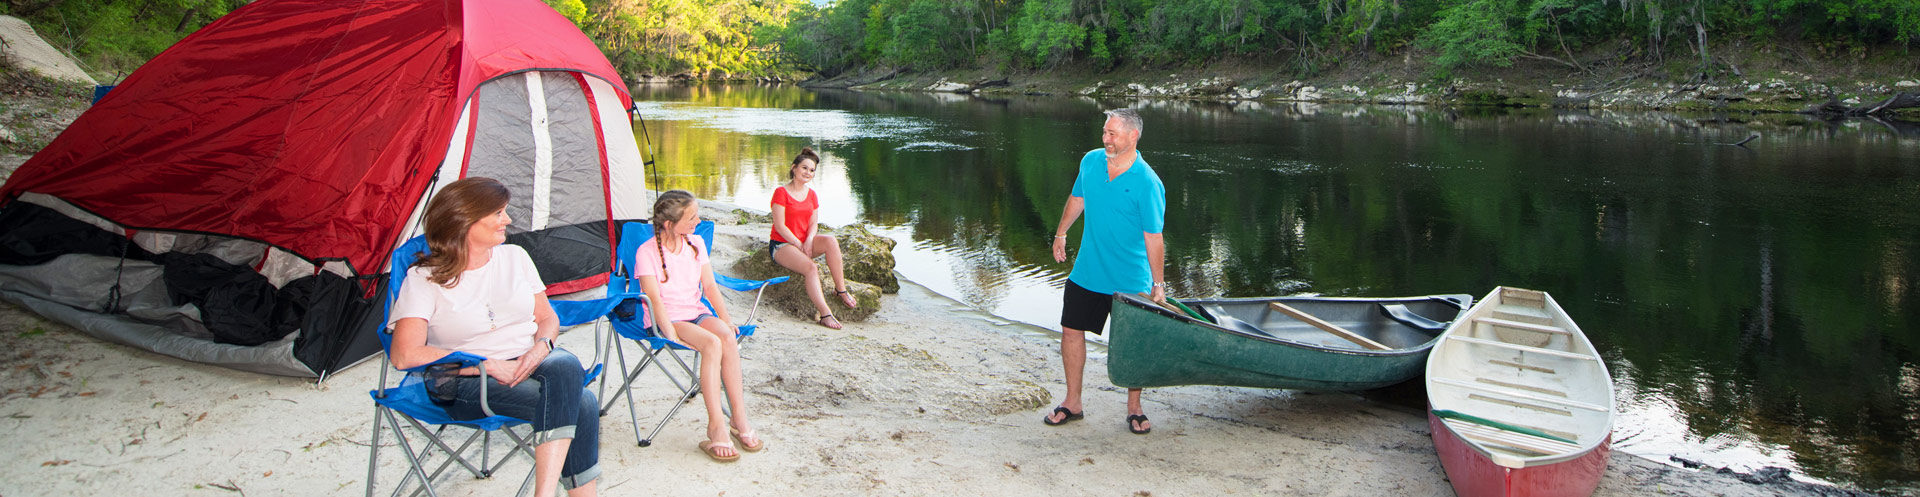 family at campground in suwannee with tent and kayaks